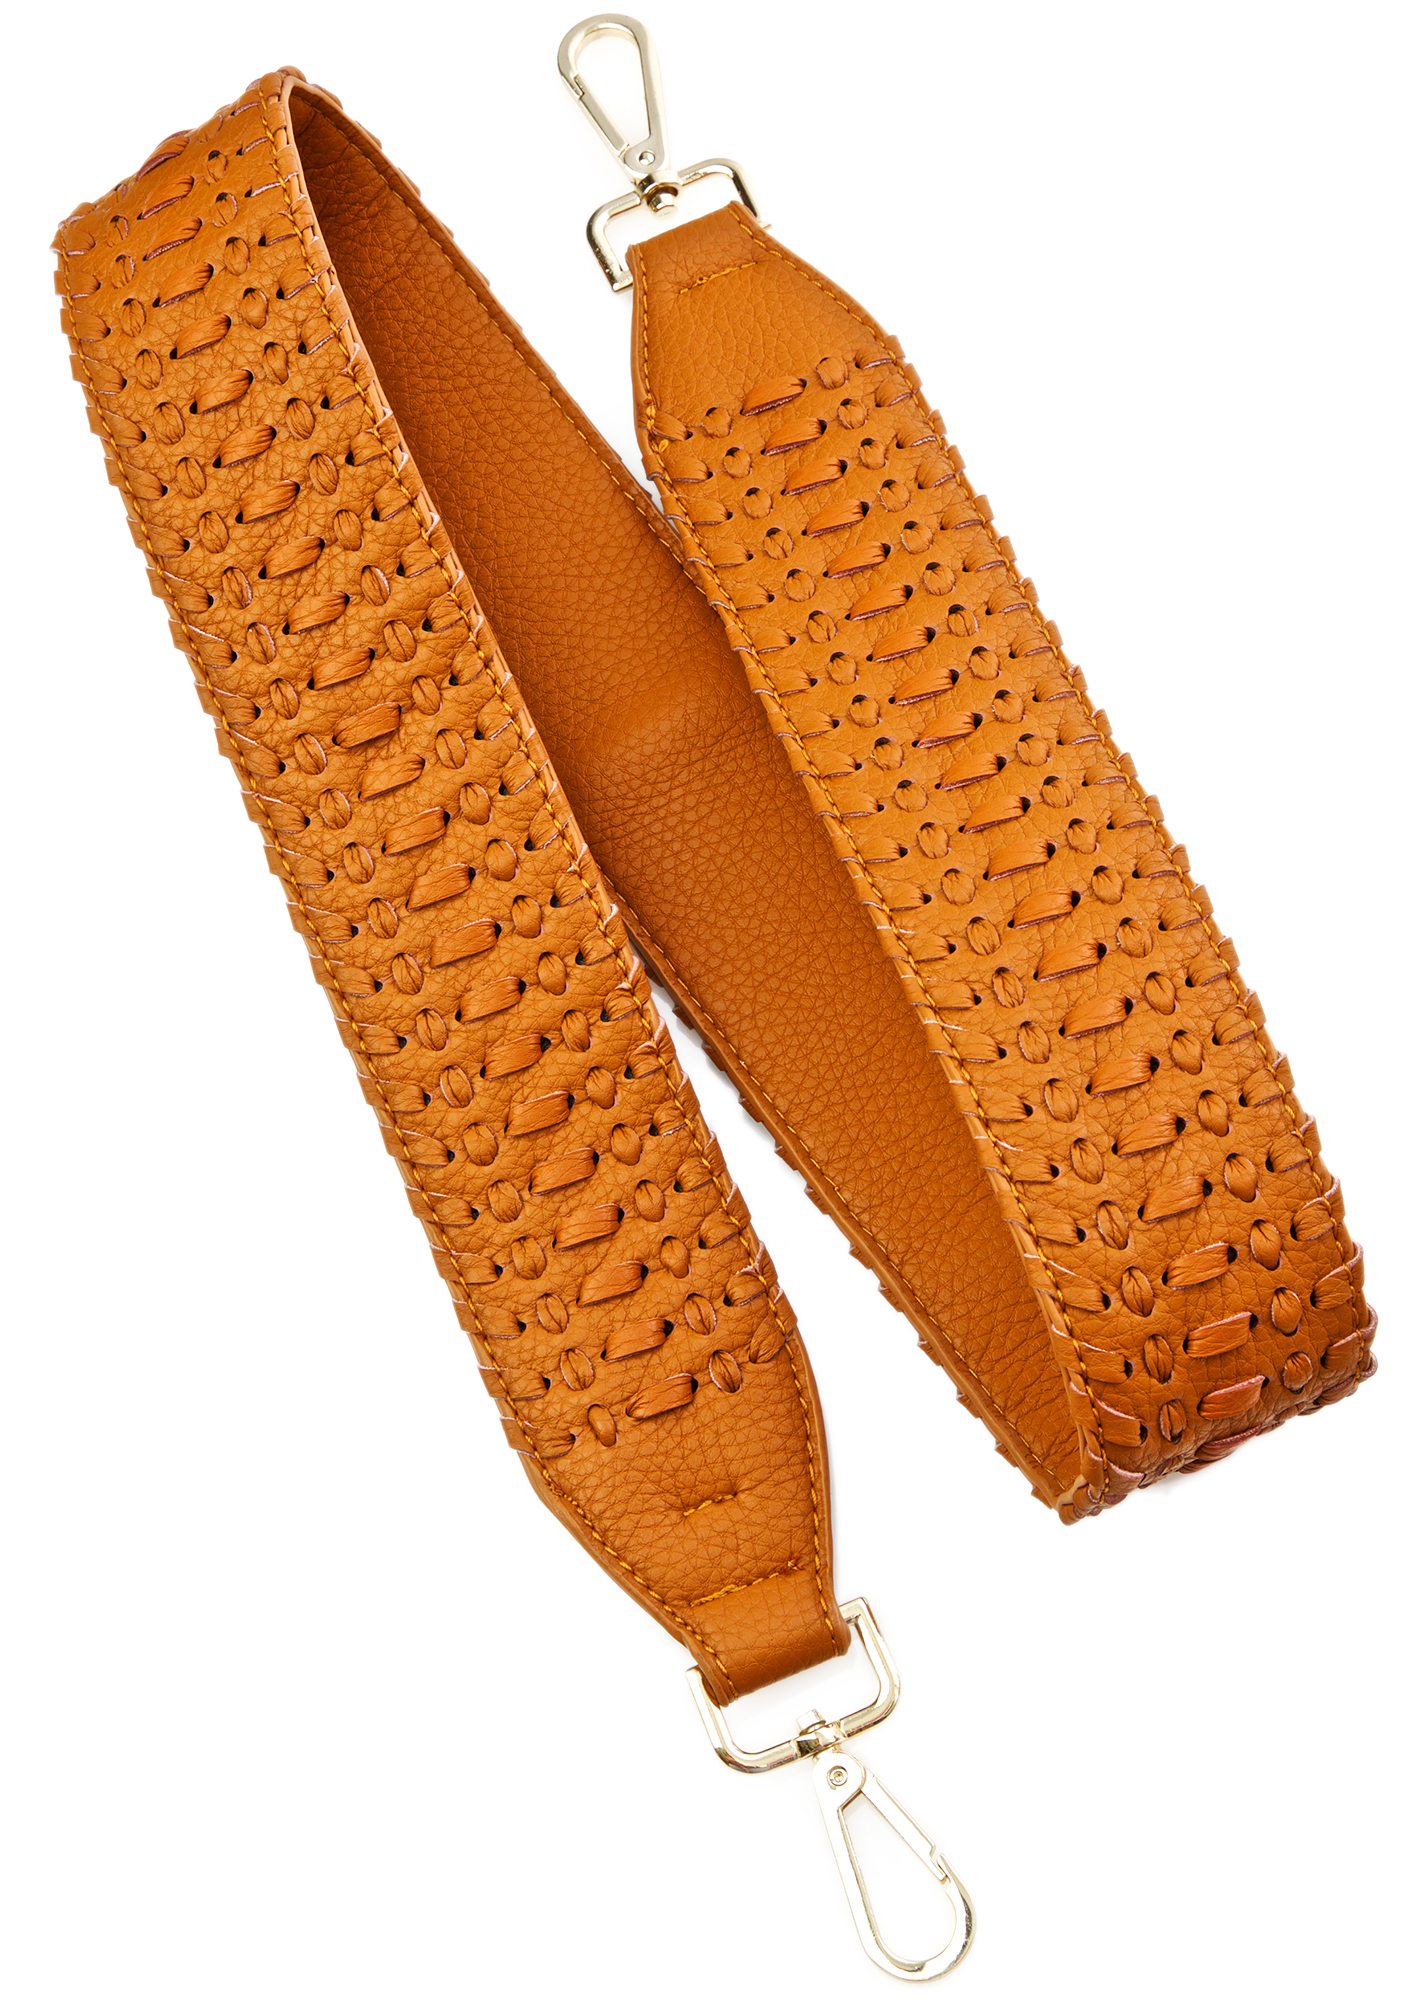 Underwood Woven Guitar Strap